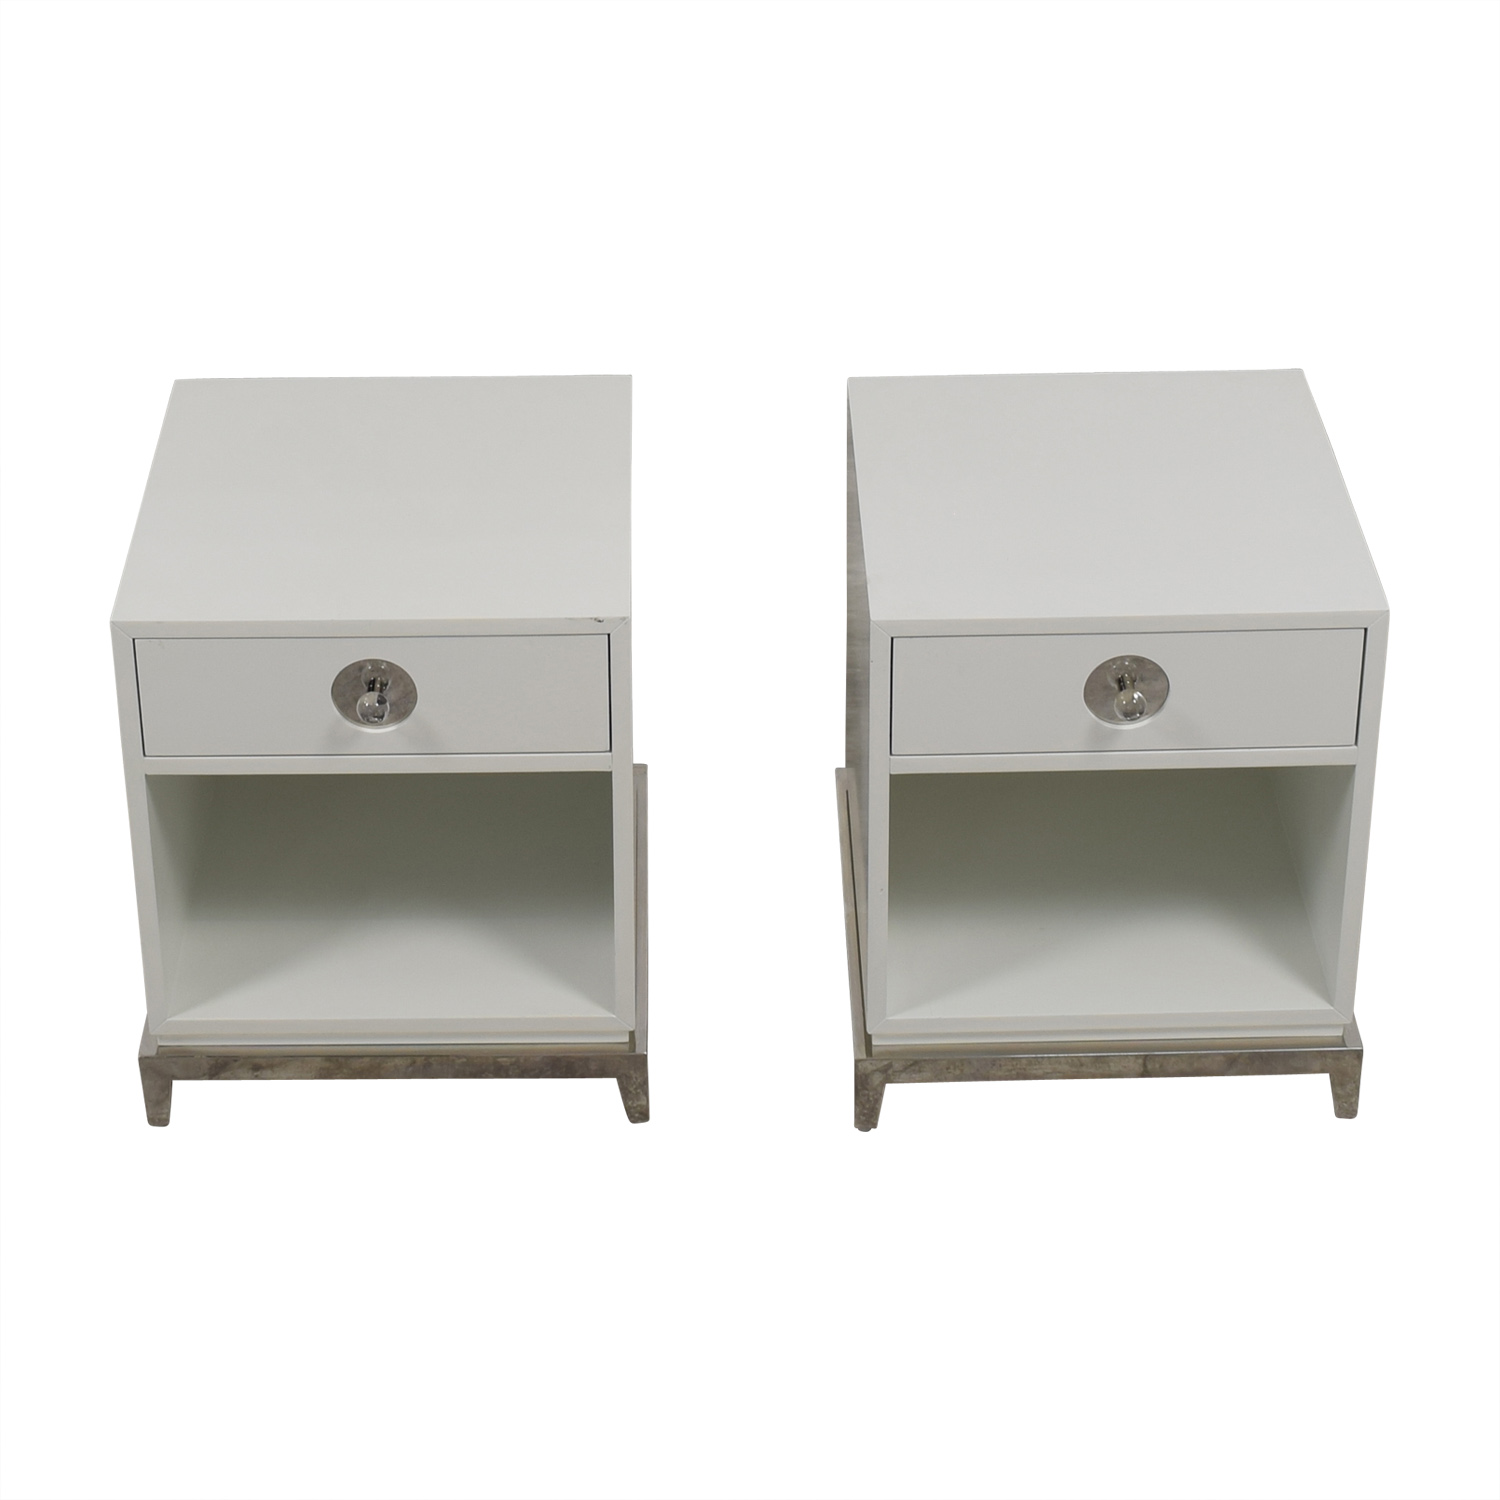 Jonathan Adler Jonathan Adler White Single-Drawer Side Tables coupon